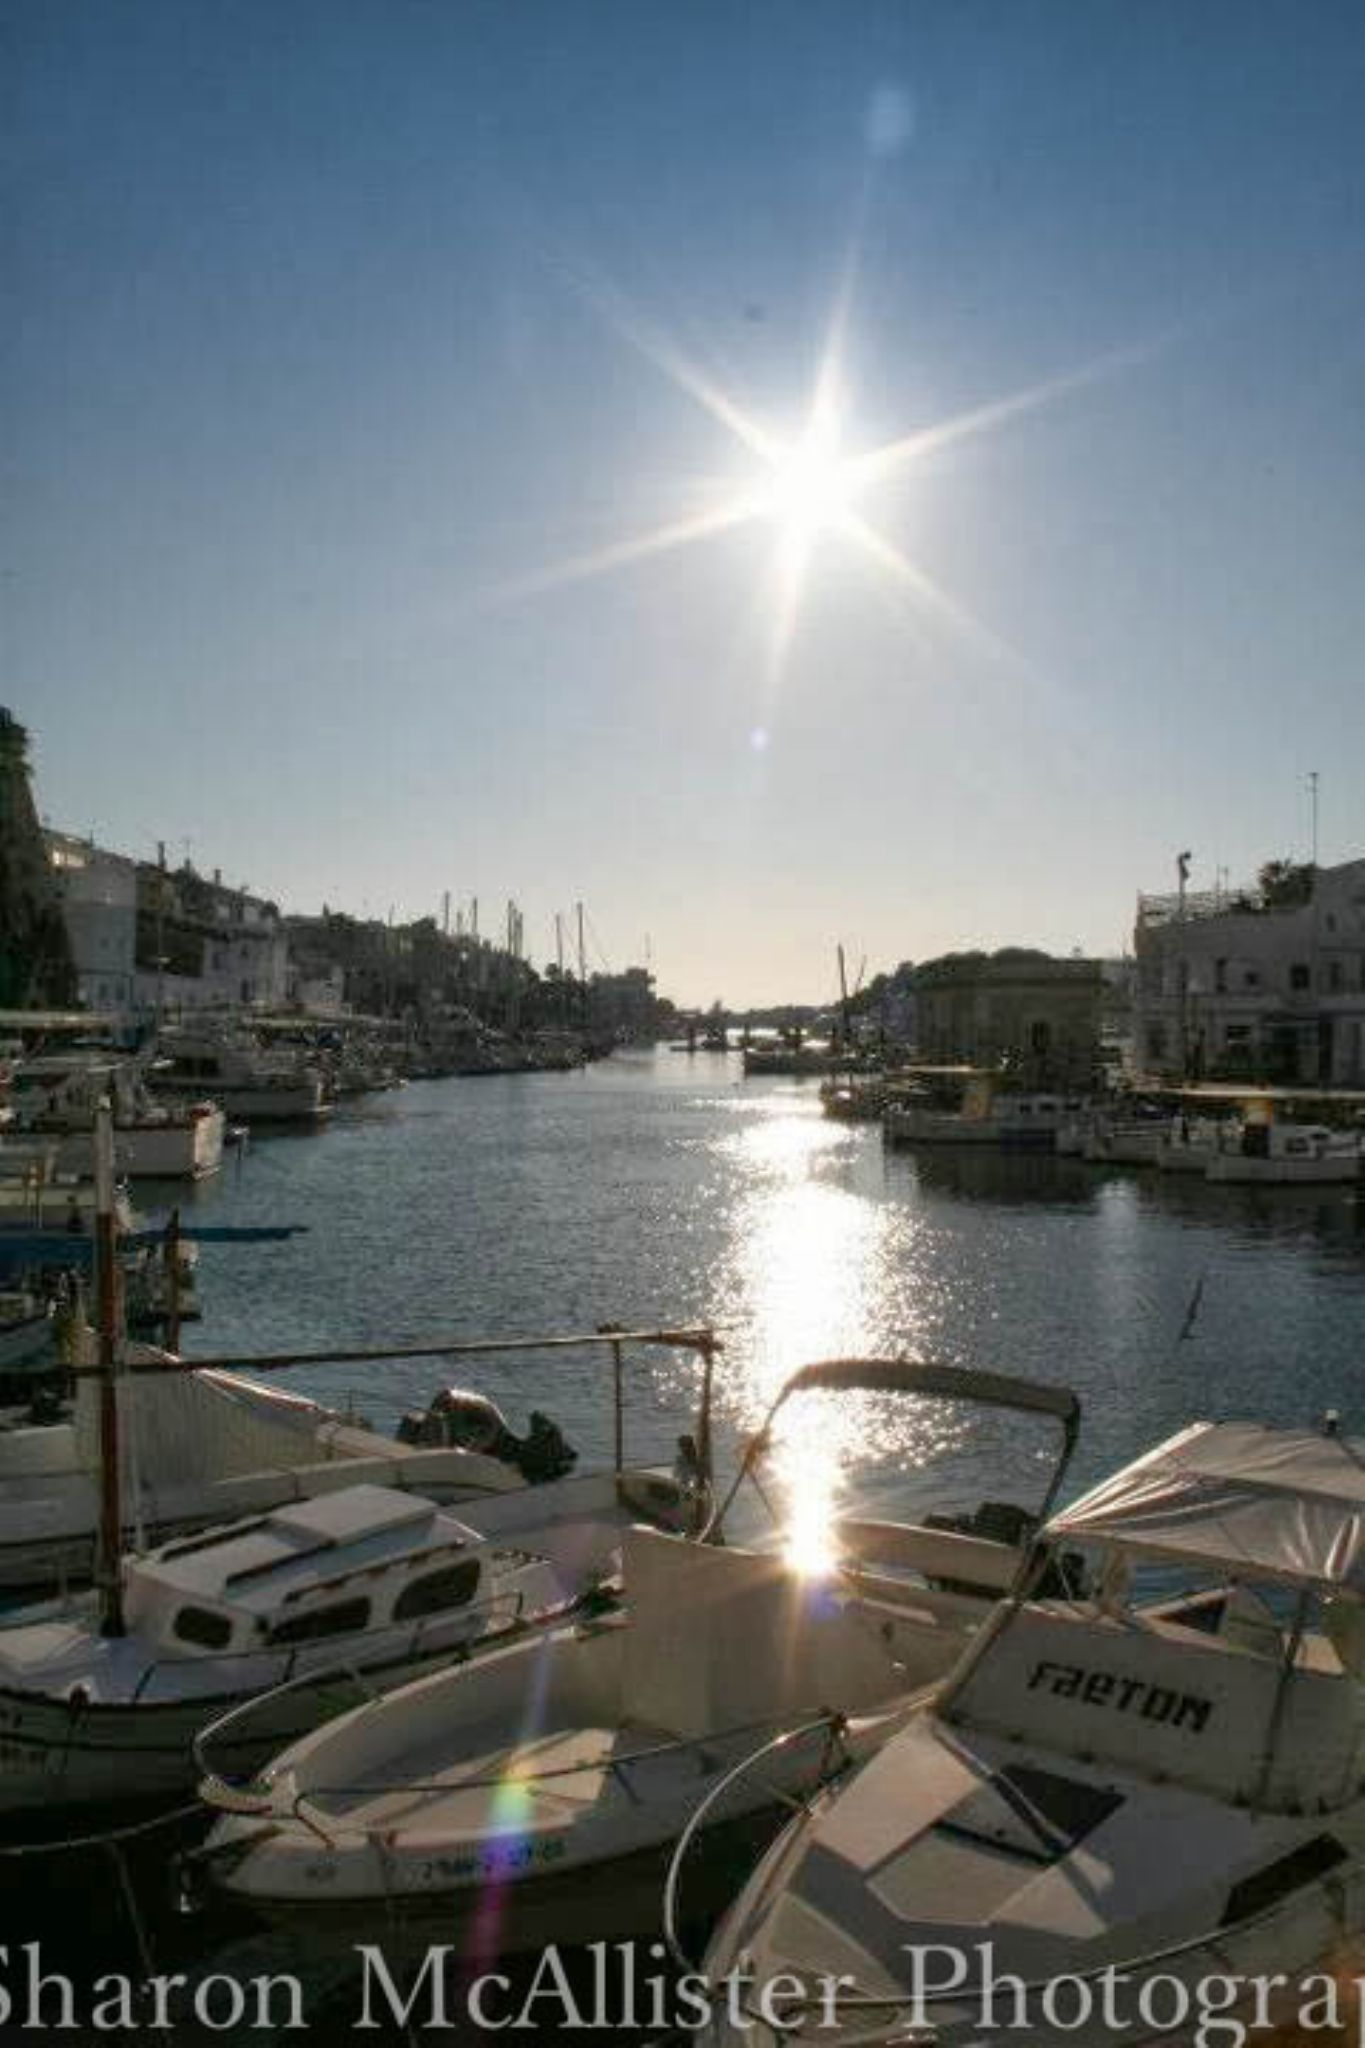 Sunset over boats in Menorca by Sharon McAllister